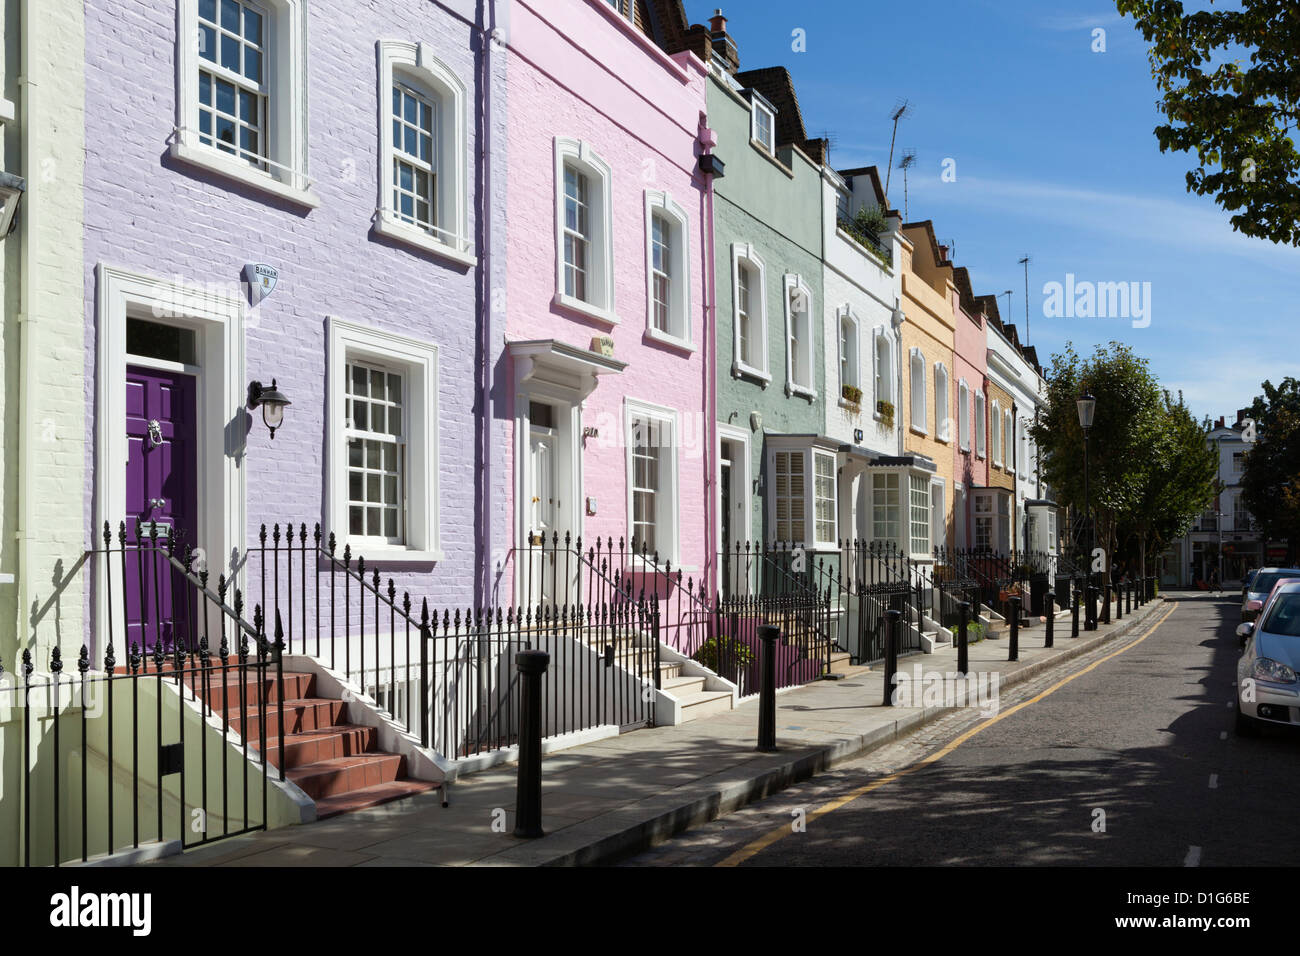 Pastel coloured terraced houses, Bywater Street, Chelsea, London, England, United Kingdom, Europe - Stock Image